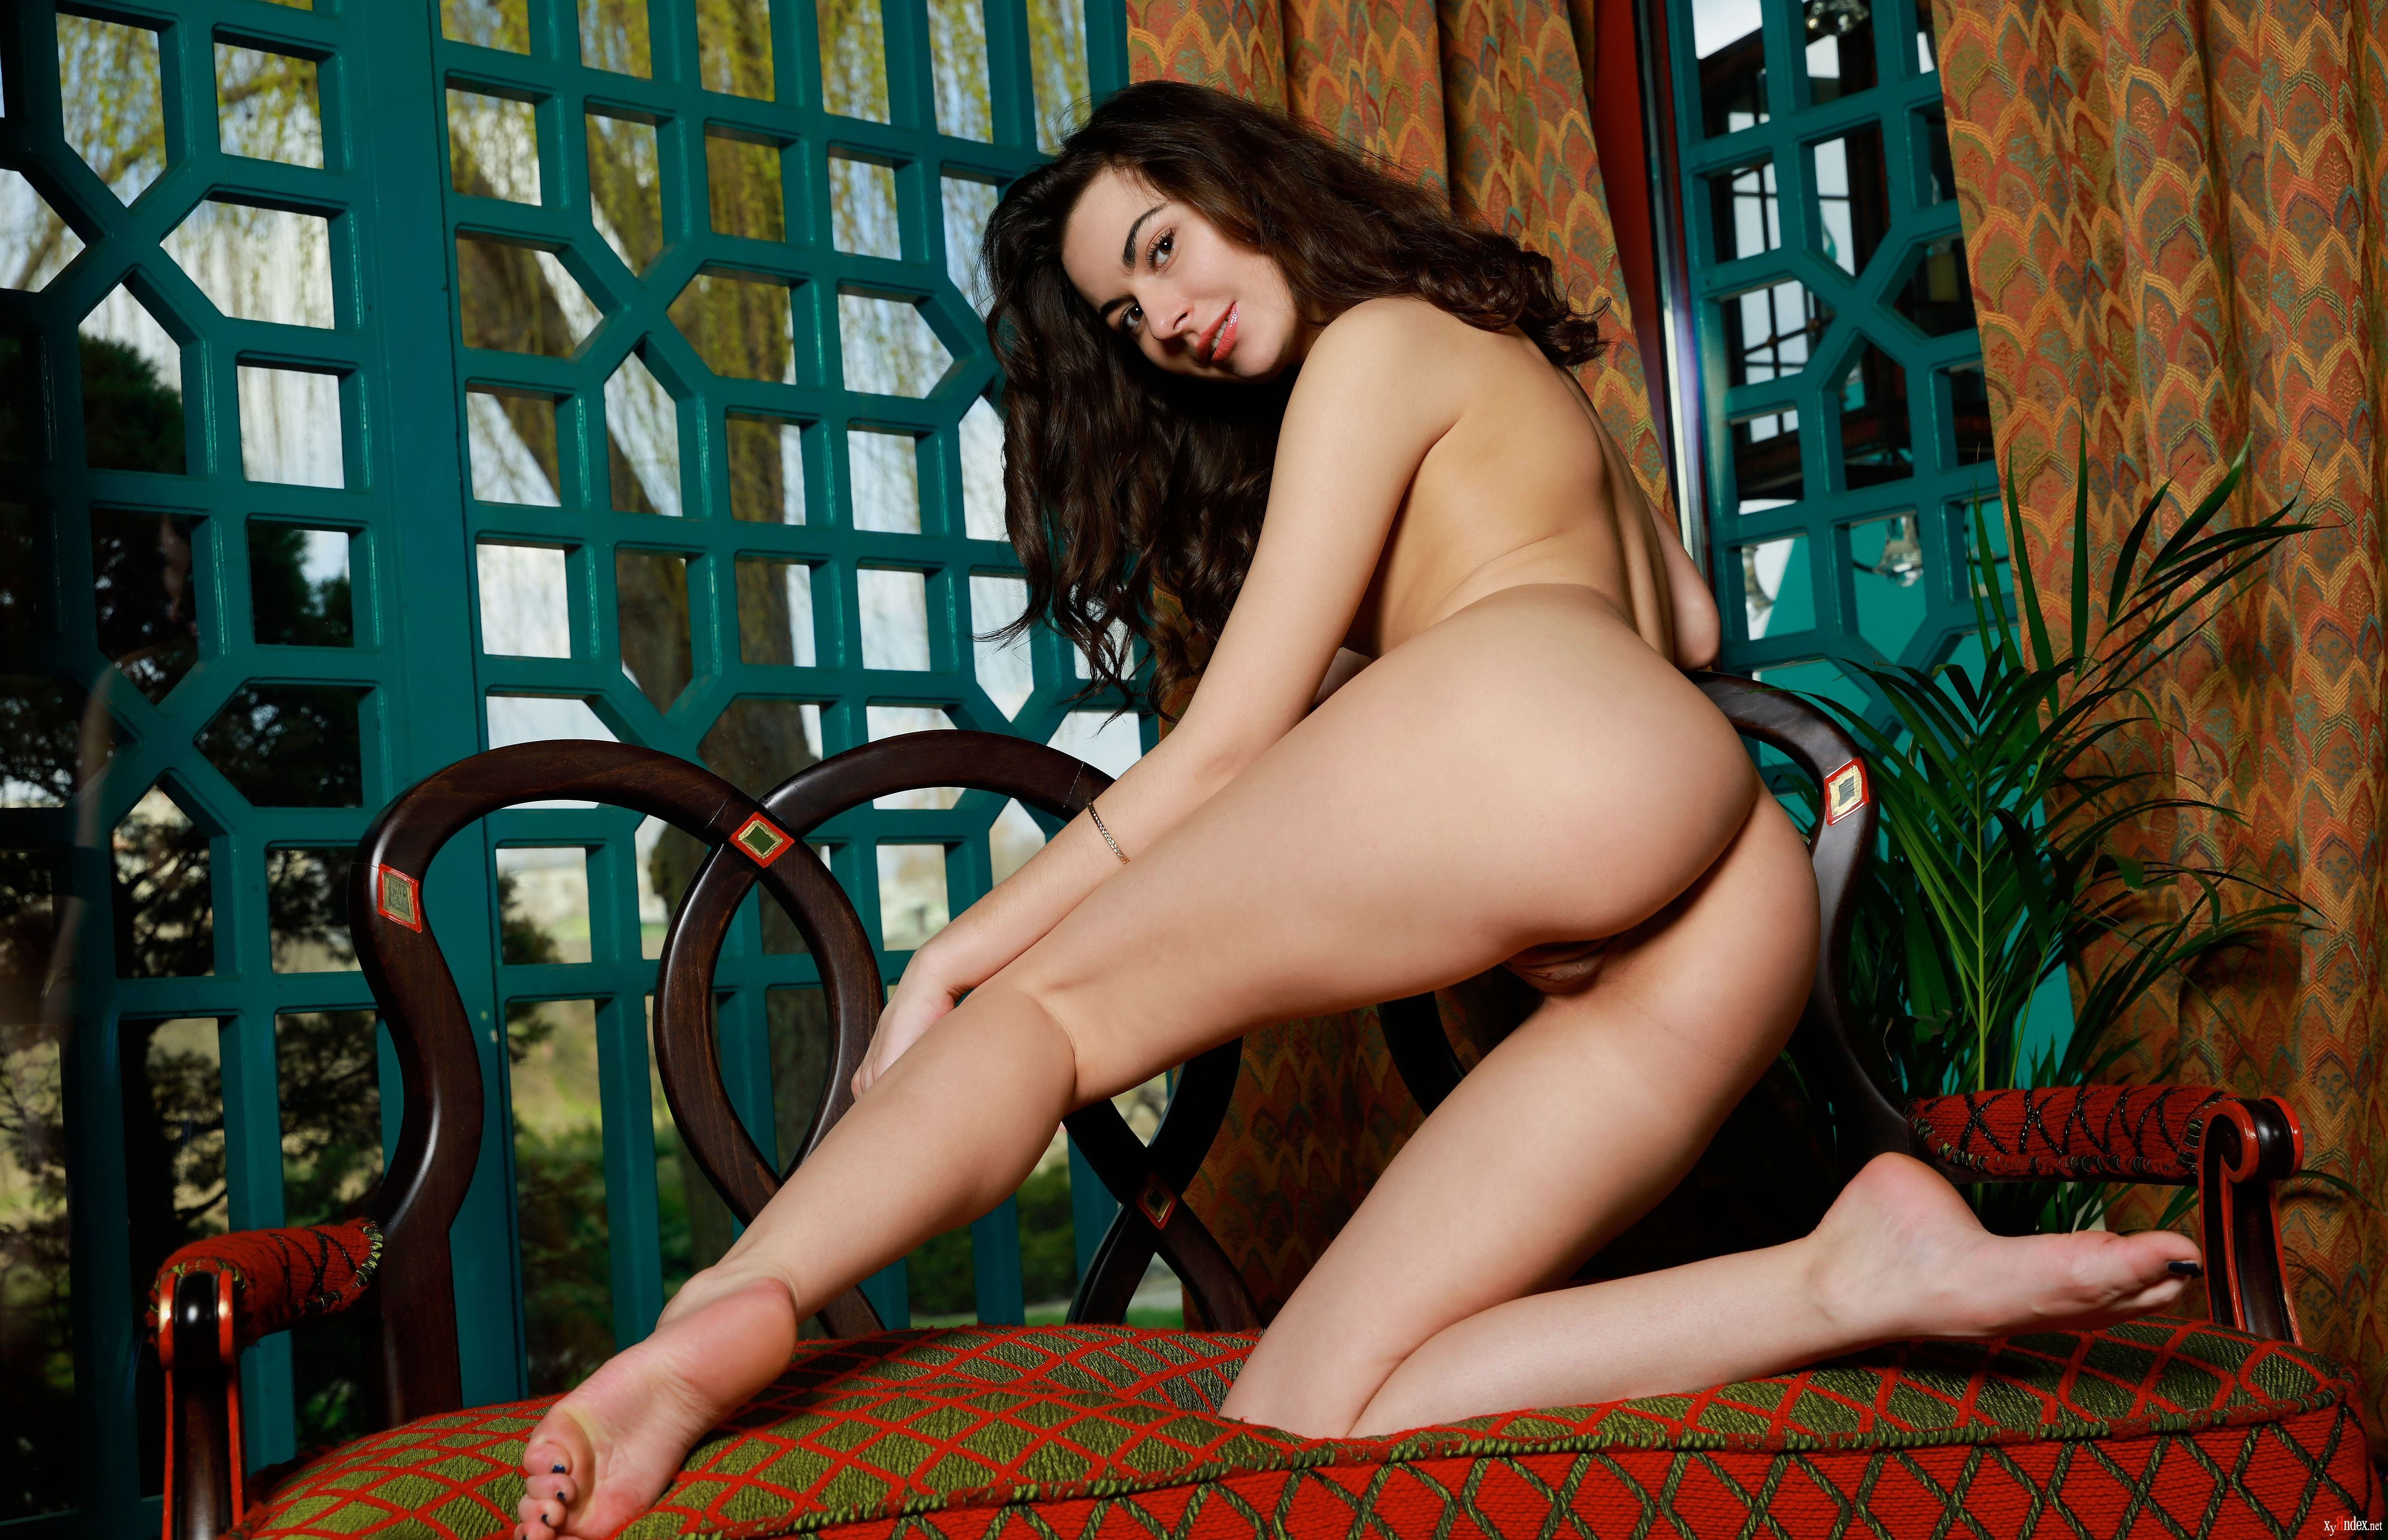 Nude and flexible catherine showing her perfectly shaped strong and sexy body exquisite slave